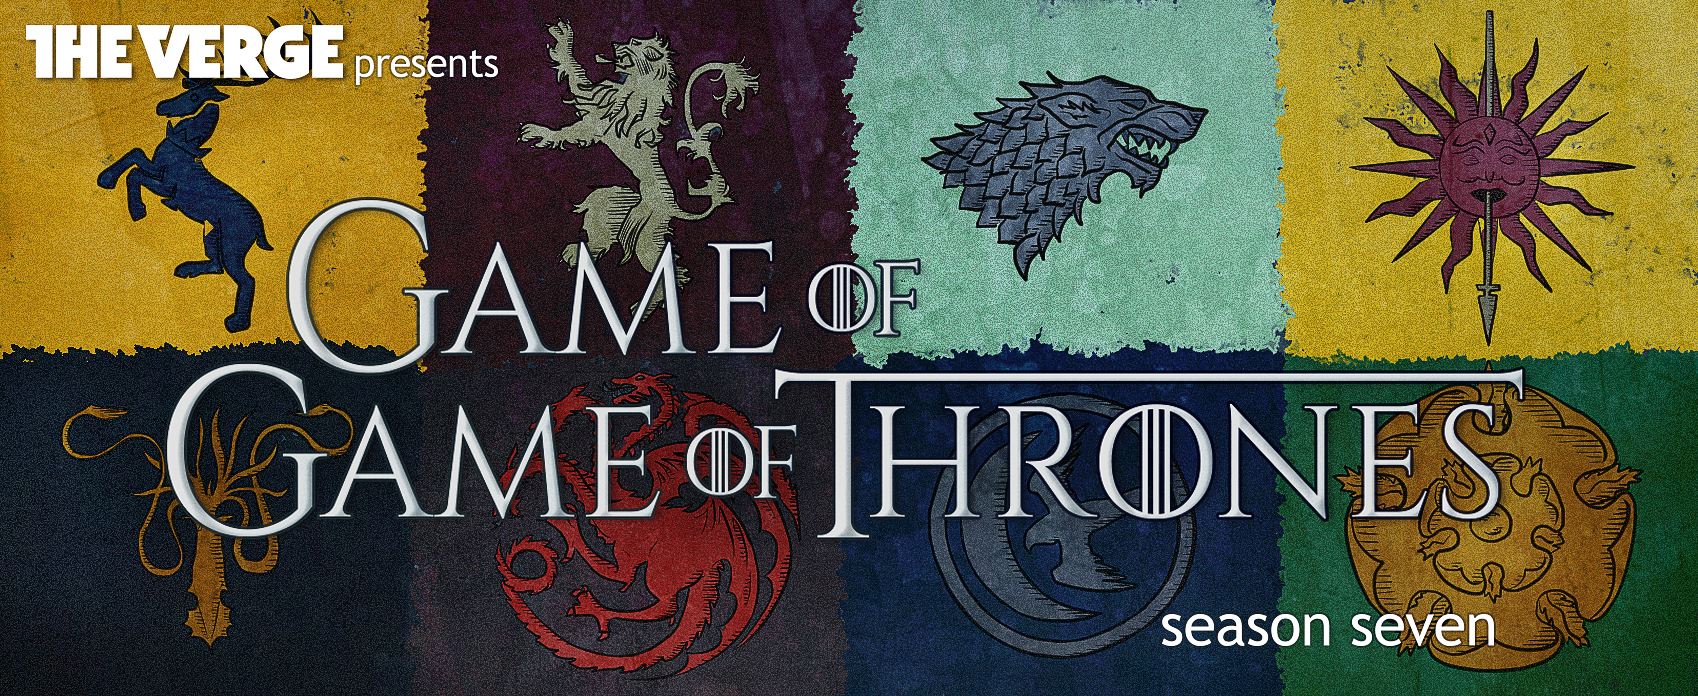 The Game of Game of Thrones: Season 7